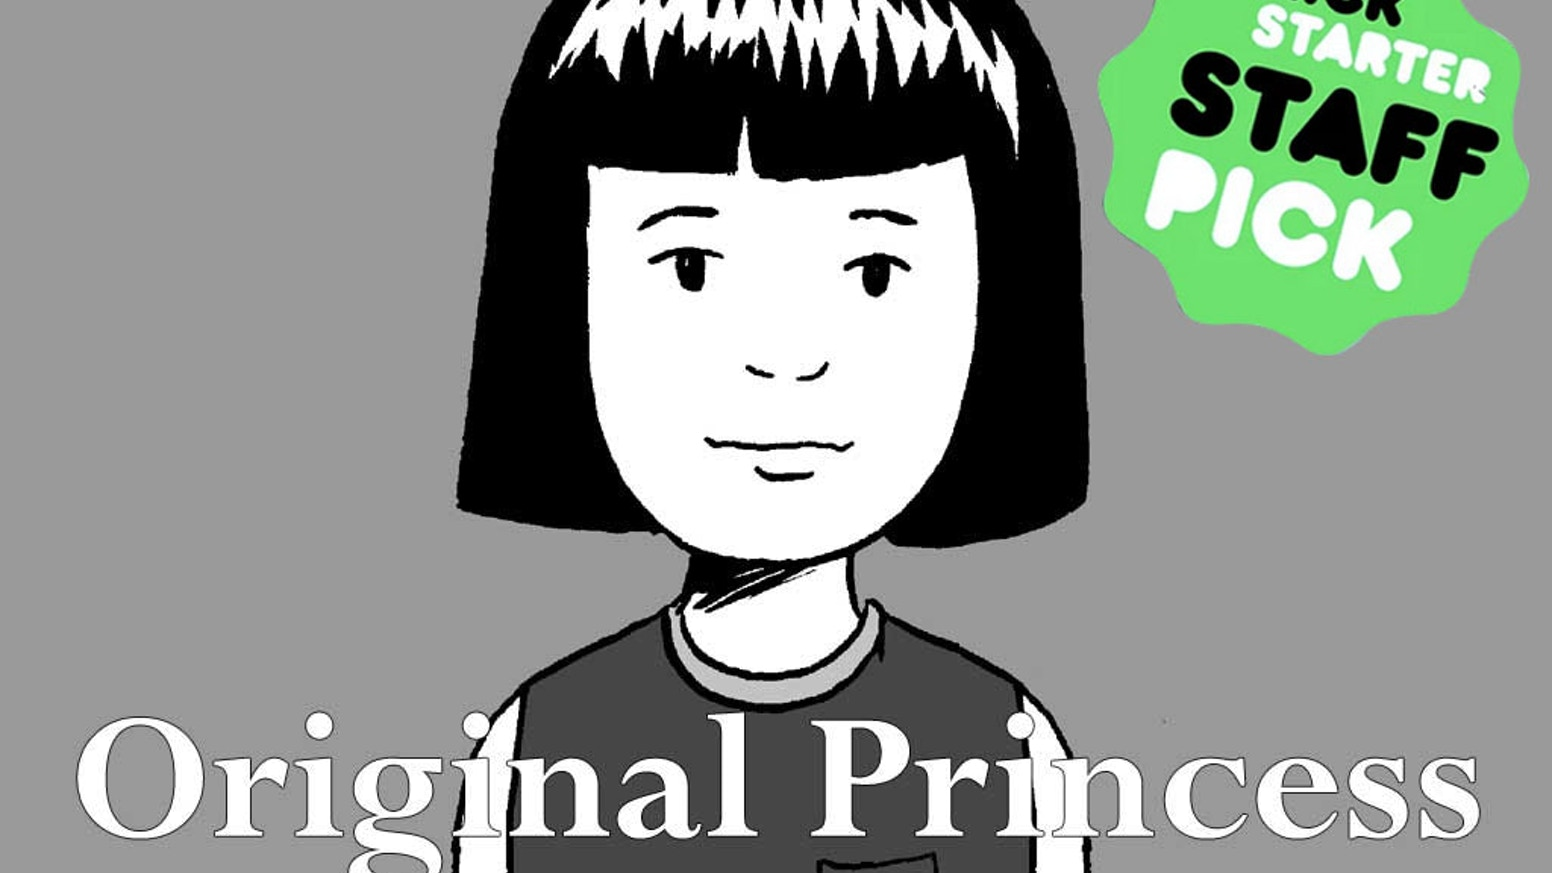 A graphic memoir about growing up in the Philippines in the 1980s.